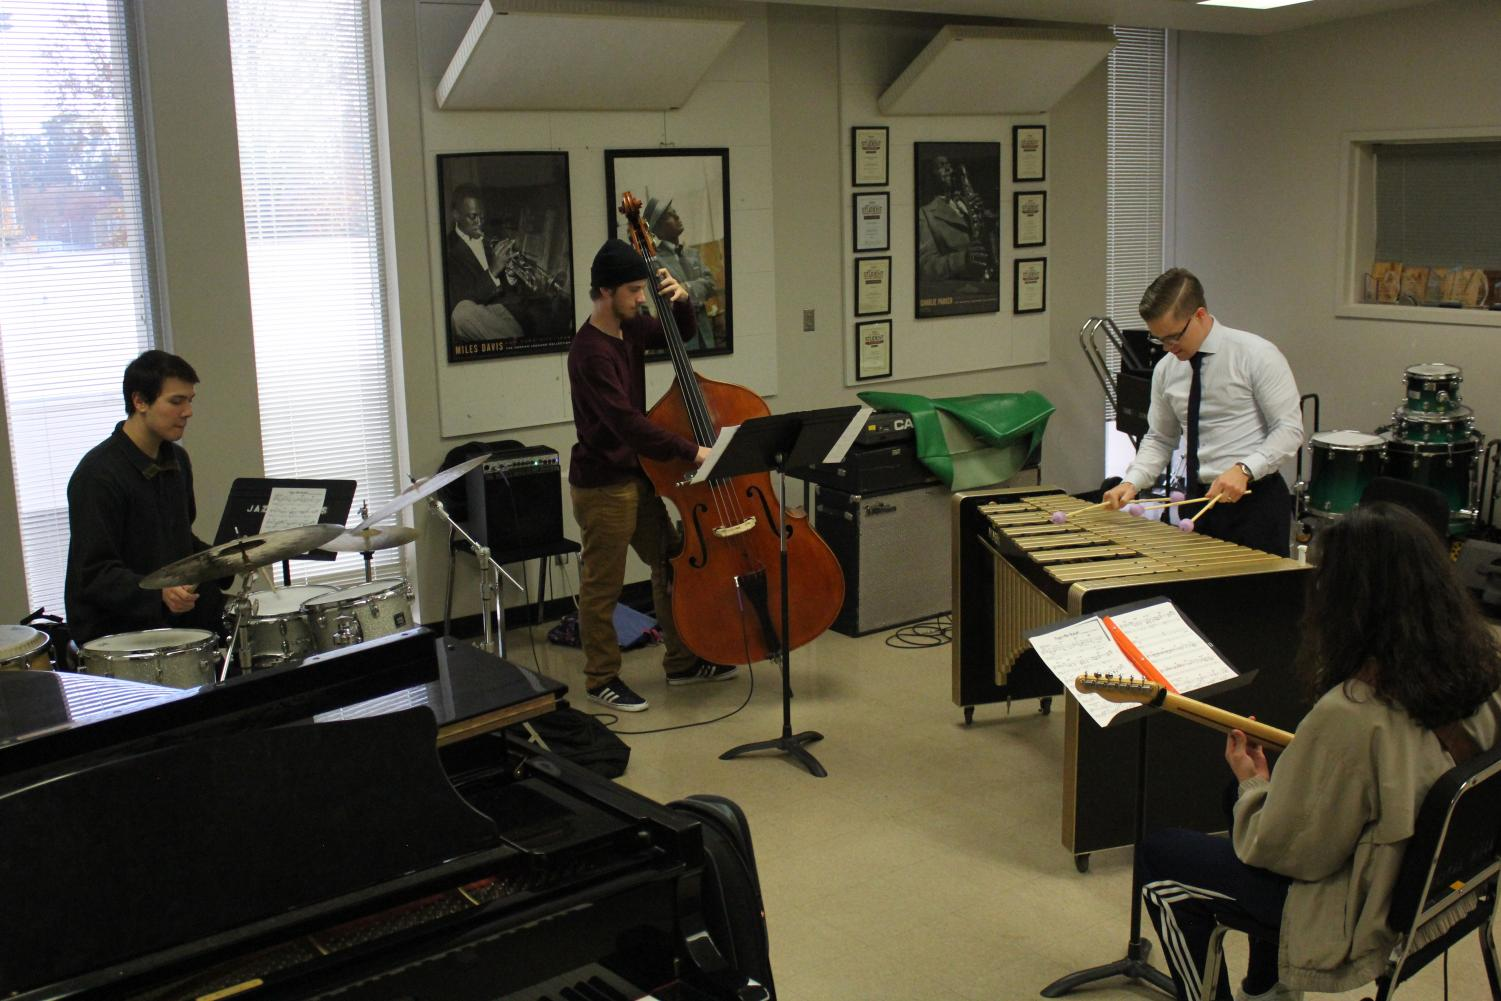 Jazz studies students Zach Martin on guitar, Gabe Carpenter on drums, Tyler Miles on bass and lecturer Tristan Rogers on vibraphone rehearse for the upcoming Jazz Combo concert. Jazz Combos are bands made up of Sac State student and alumni musicians.